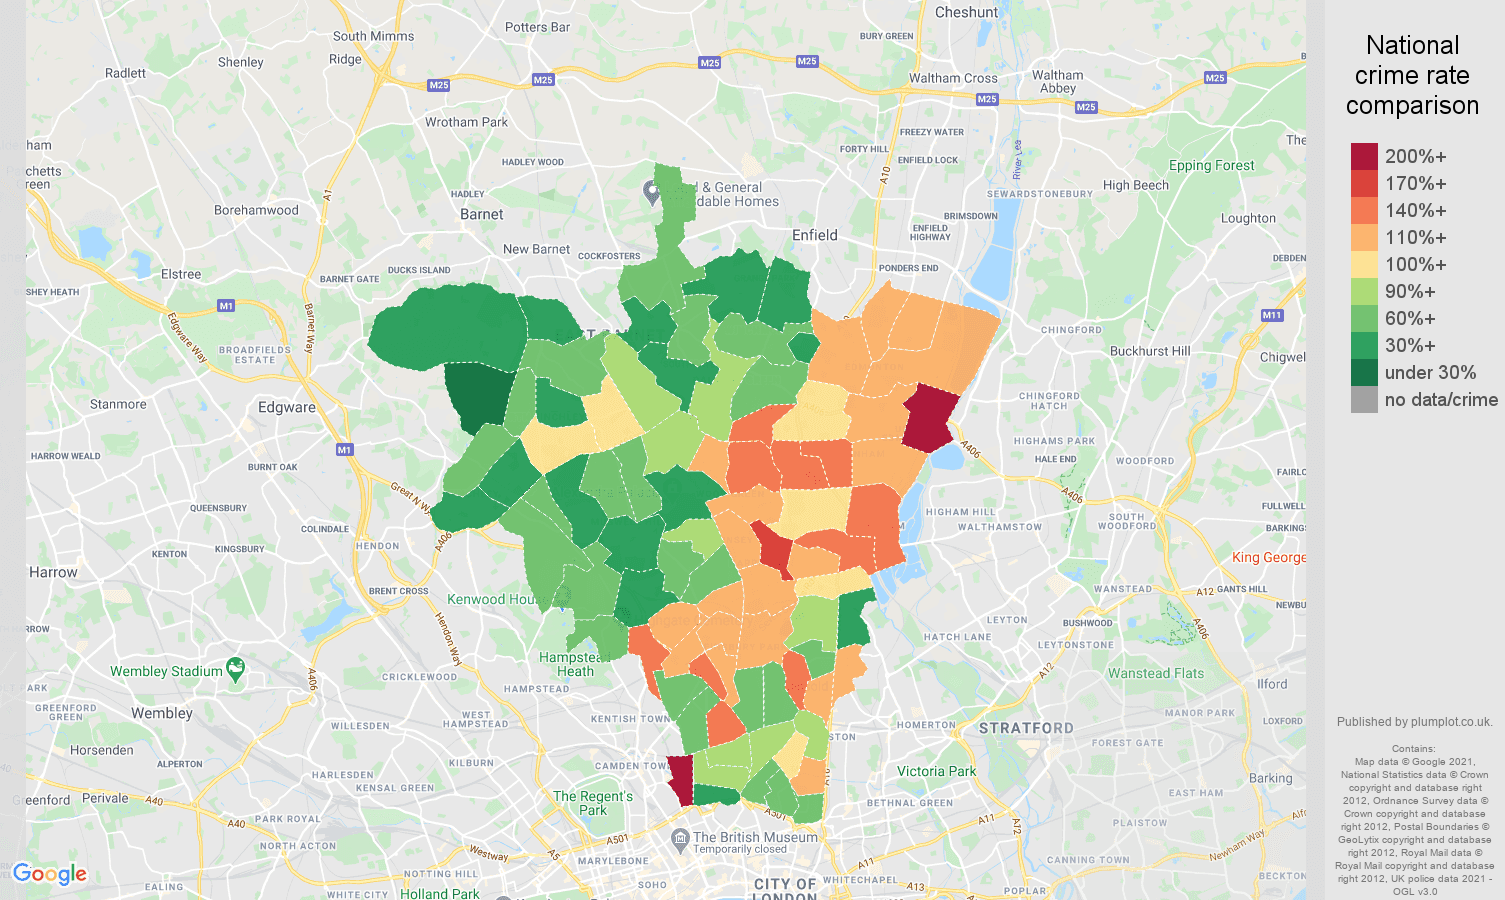 North London violent crime rate comparison map